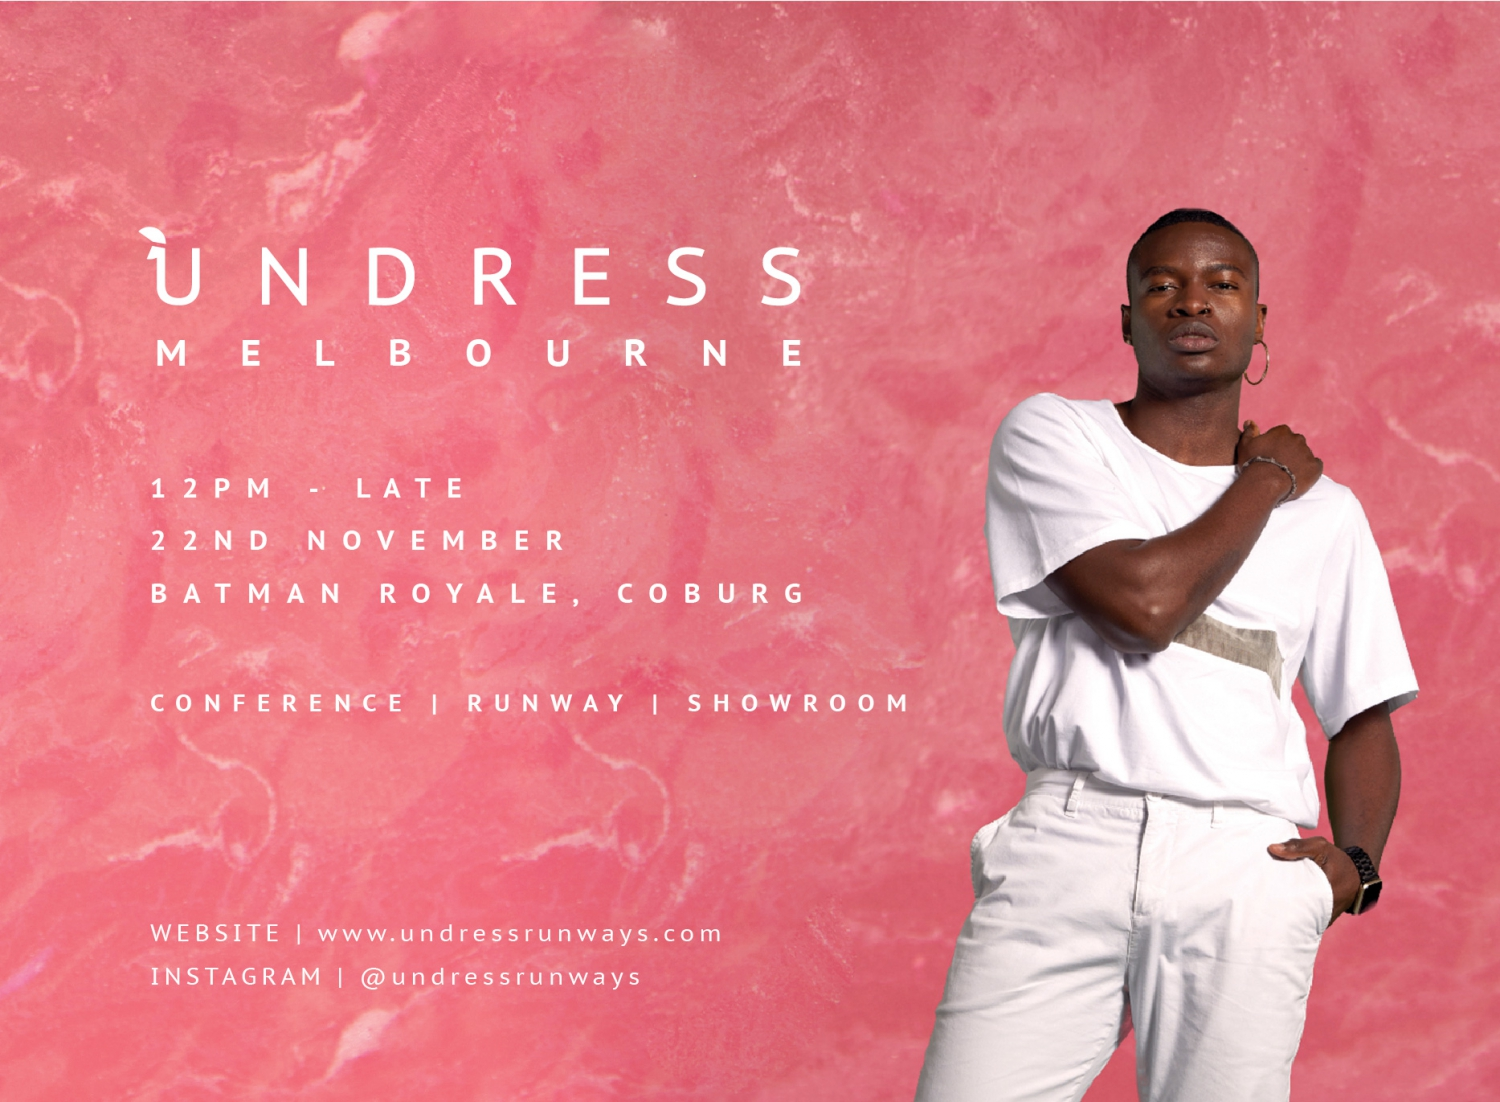 Undress Melbourne